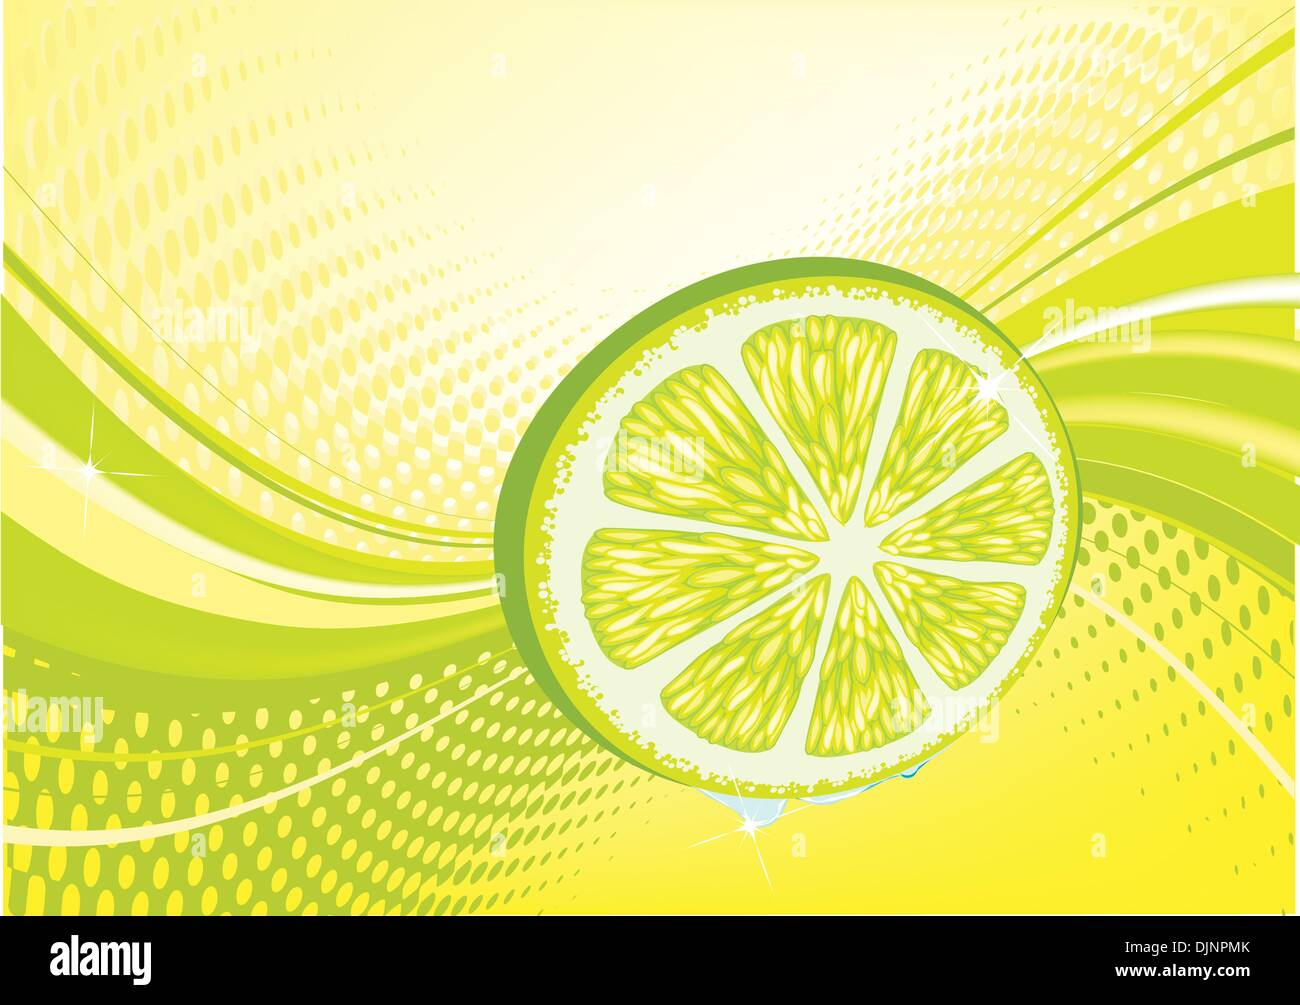 Yellow  abstract fruit background: composition of dots and curved lines - great for backgrounds, or layering over other images - Stock Vector